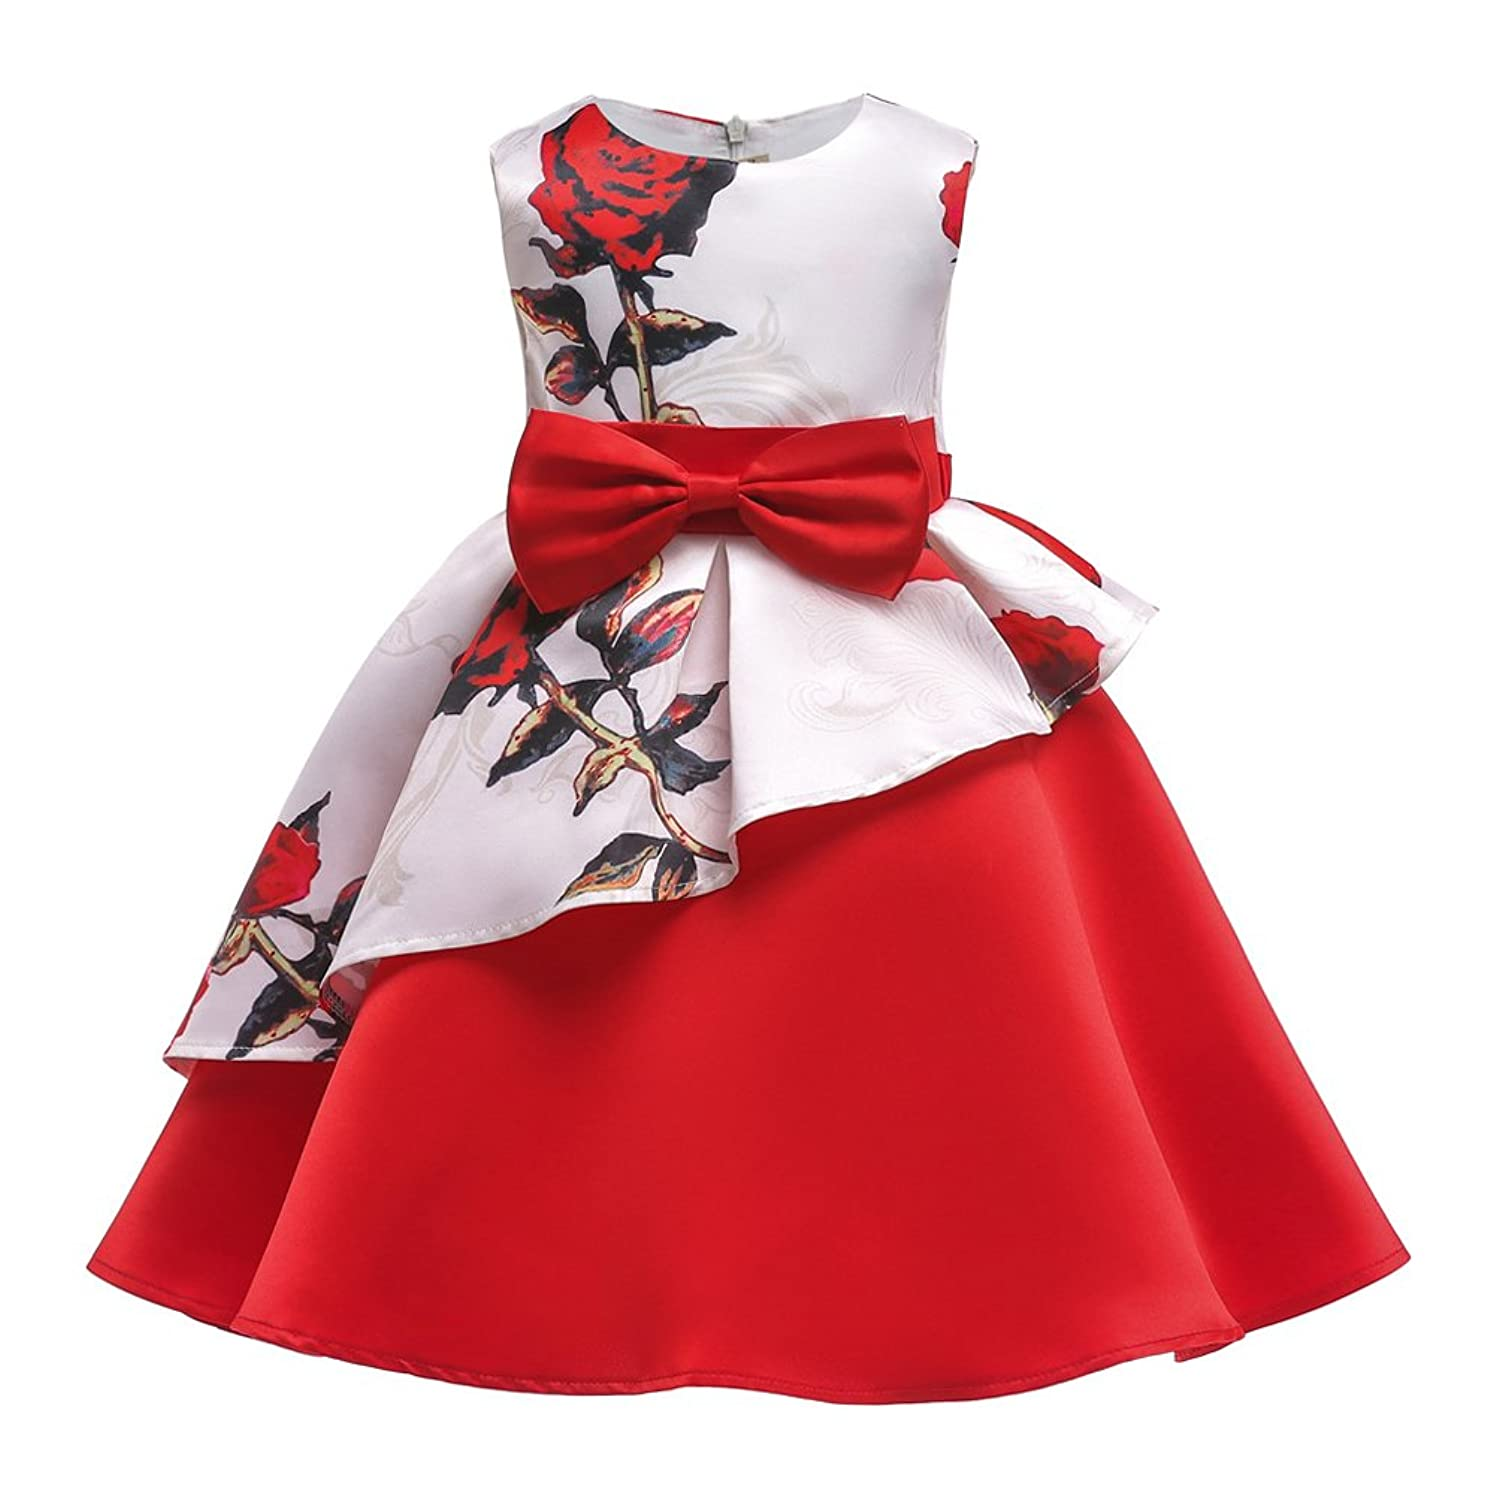 4f9695e82a32 ... the delicate skin of babies and girls. Pithy patterns and colors and  solid-cutting-out make the formal dress totally different.Round neckline,  flower ...